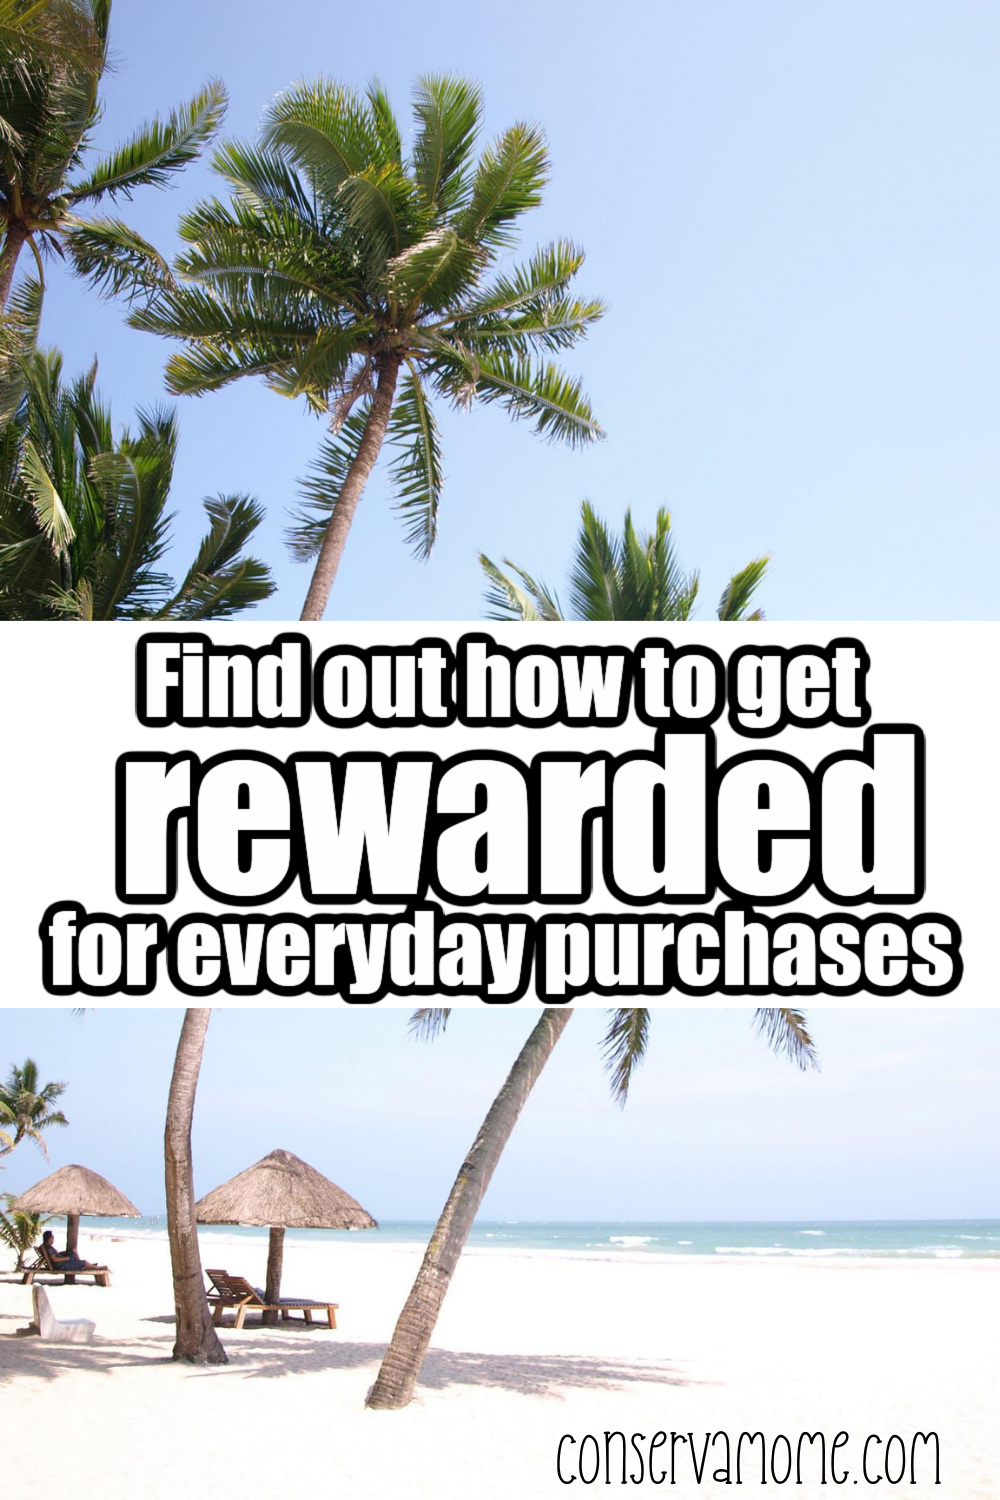 Find out how to get rewarded for everyday purchases